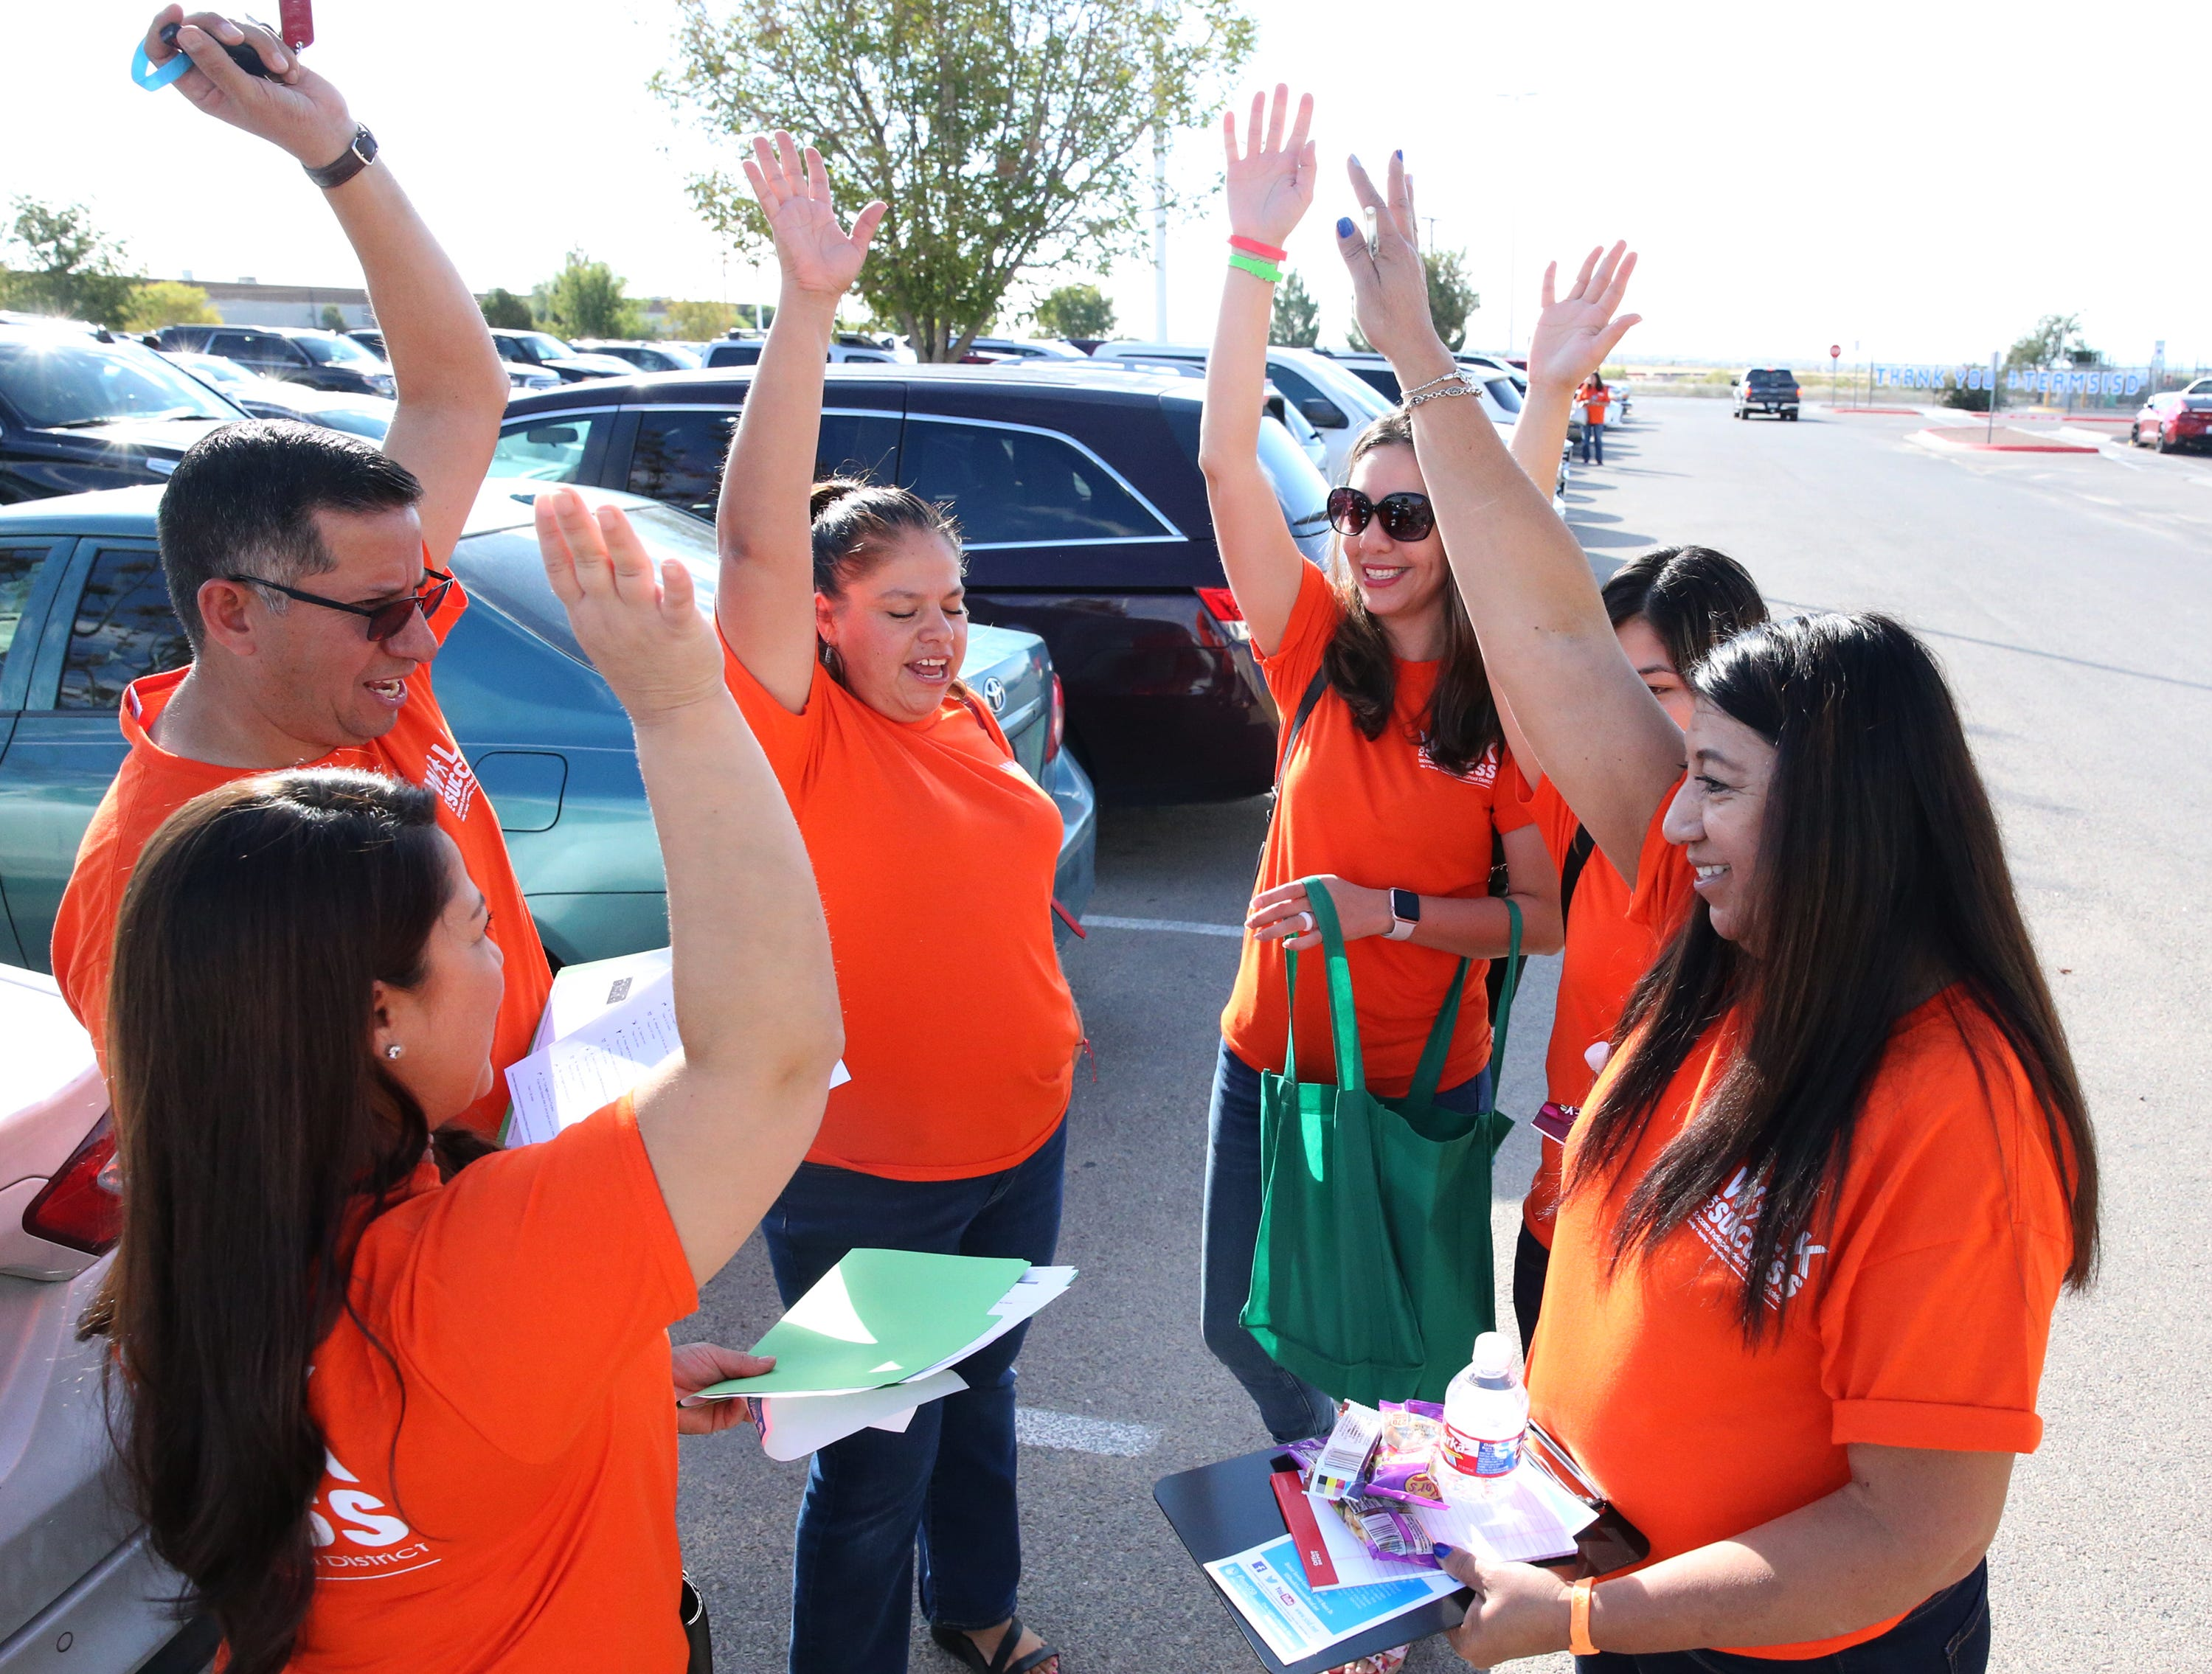 "Gabriela Elliott, top right, principal at Bill Sybert K-8 School leads a Socorro school district team in a cheer before heading out to meet with high school students who are no longer enrolled in school during the district's 5th Annual Walk for Success Saturday at district's service center at 1244 Rojas Drive. Over 300 district teachers, counselors, administrators and others sought out 156 students to encourage them to finish school and earn a diploma. The number is down from the first year of Walk for Success when they sought 300 students who had left school. ""Were not going to give up on them,"" said district superintendent Jose Espinoza, 'Thats what this is about.' The district's graduation rate, which stands at 91.3 percent is in part dependent on the success of this effort, he added. Cory Craft, academic compliance officer with the Socorro school district said options such as an alternative high school, online learning and creative scheduling at their home campus are ways the district can help them earn a diploma. William Serrata, president of El Paso Community College was on hand to lend support to the effort. ""They really take it seriously. They treat every student as if it was their own child,' he said. 'If they don't graduate from high school we can't enroll them at the college.'"